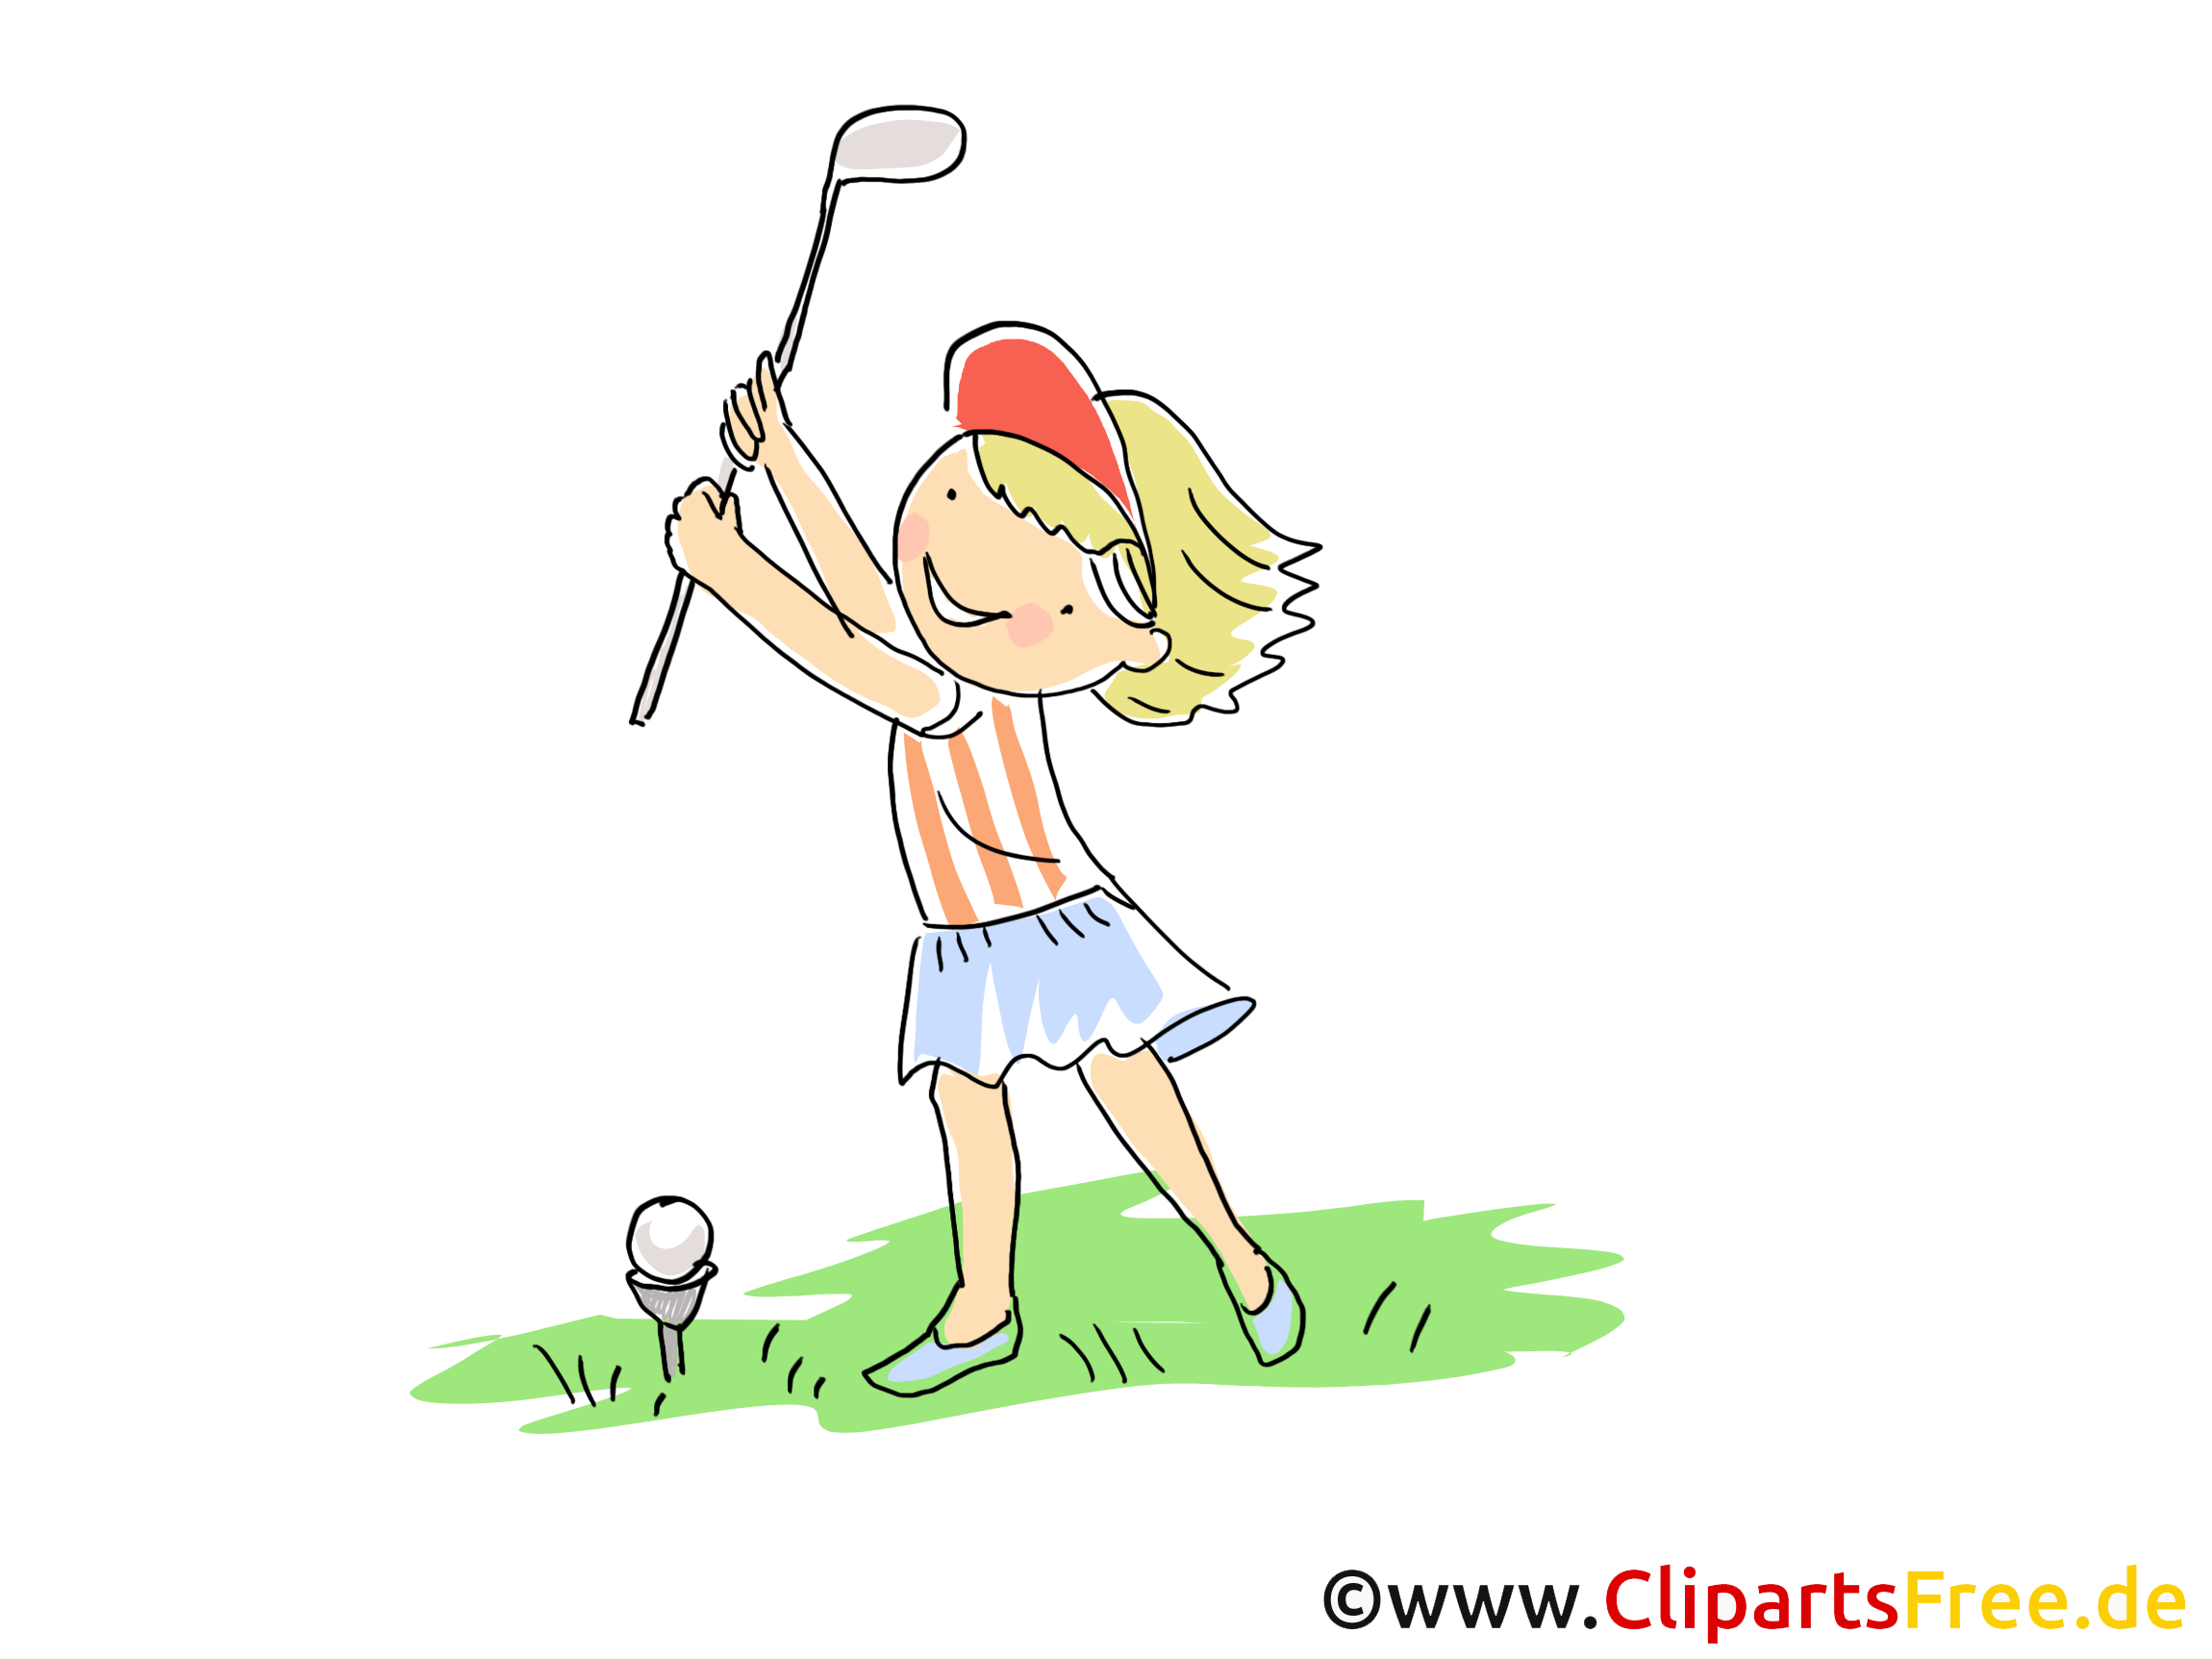 Golf images - balle dessins gratuits